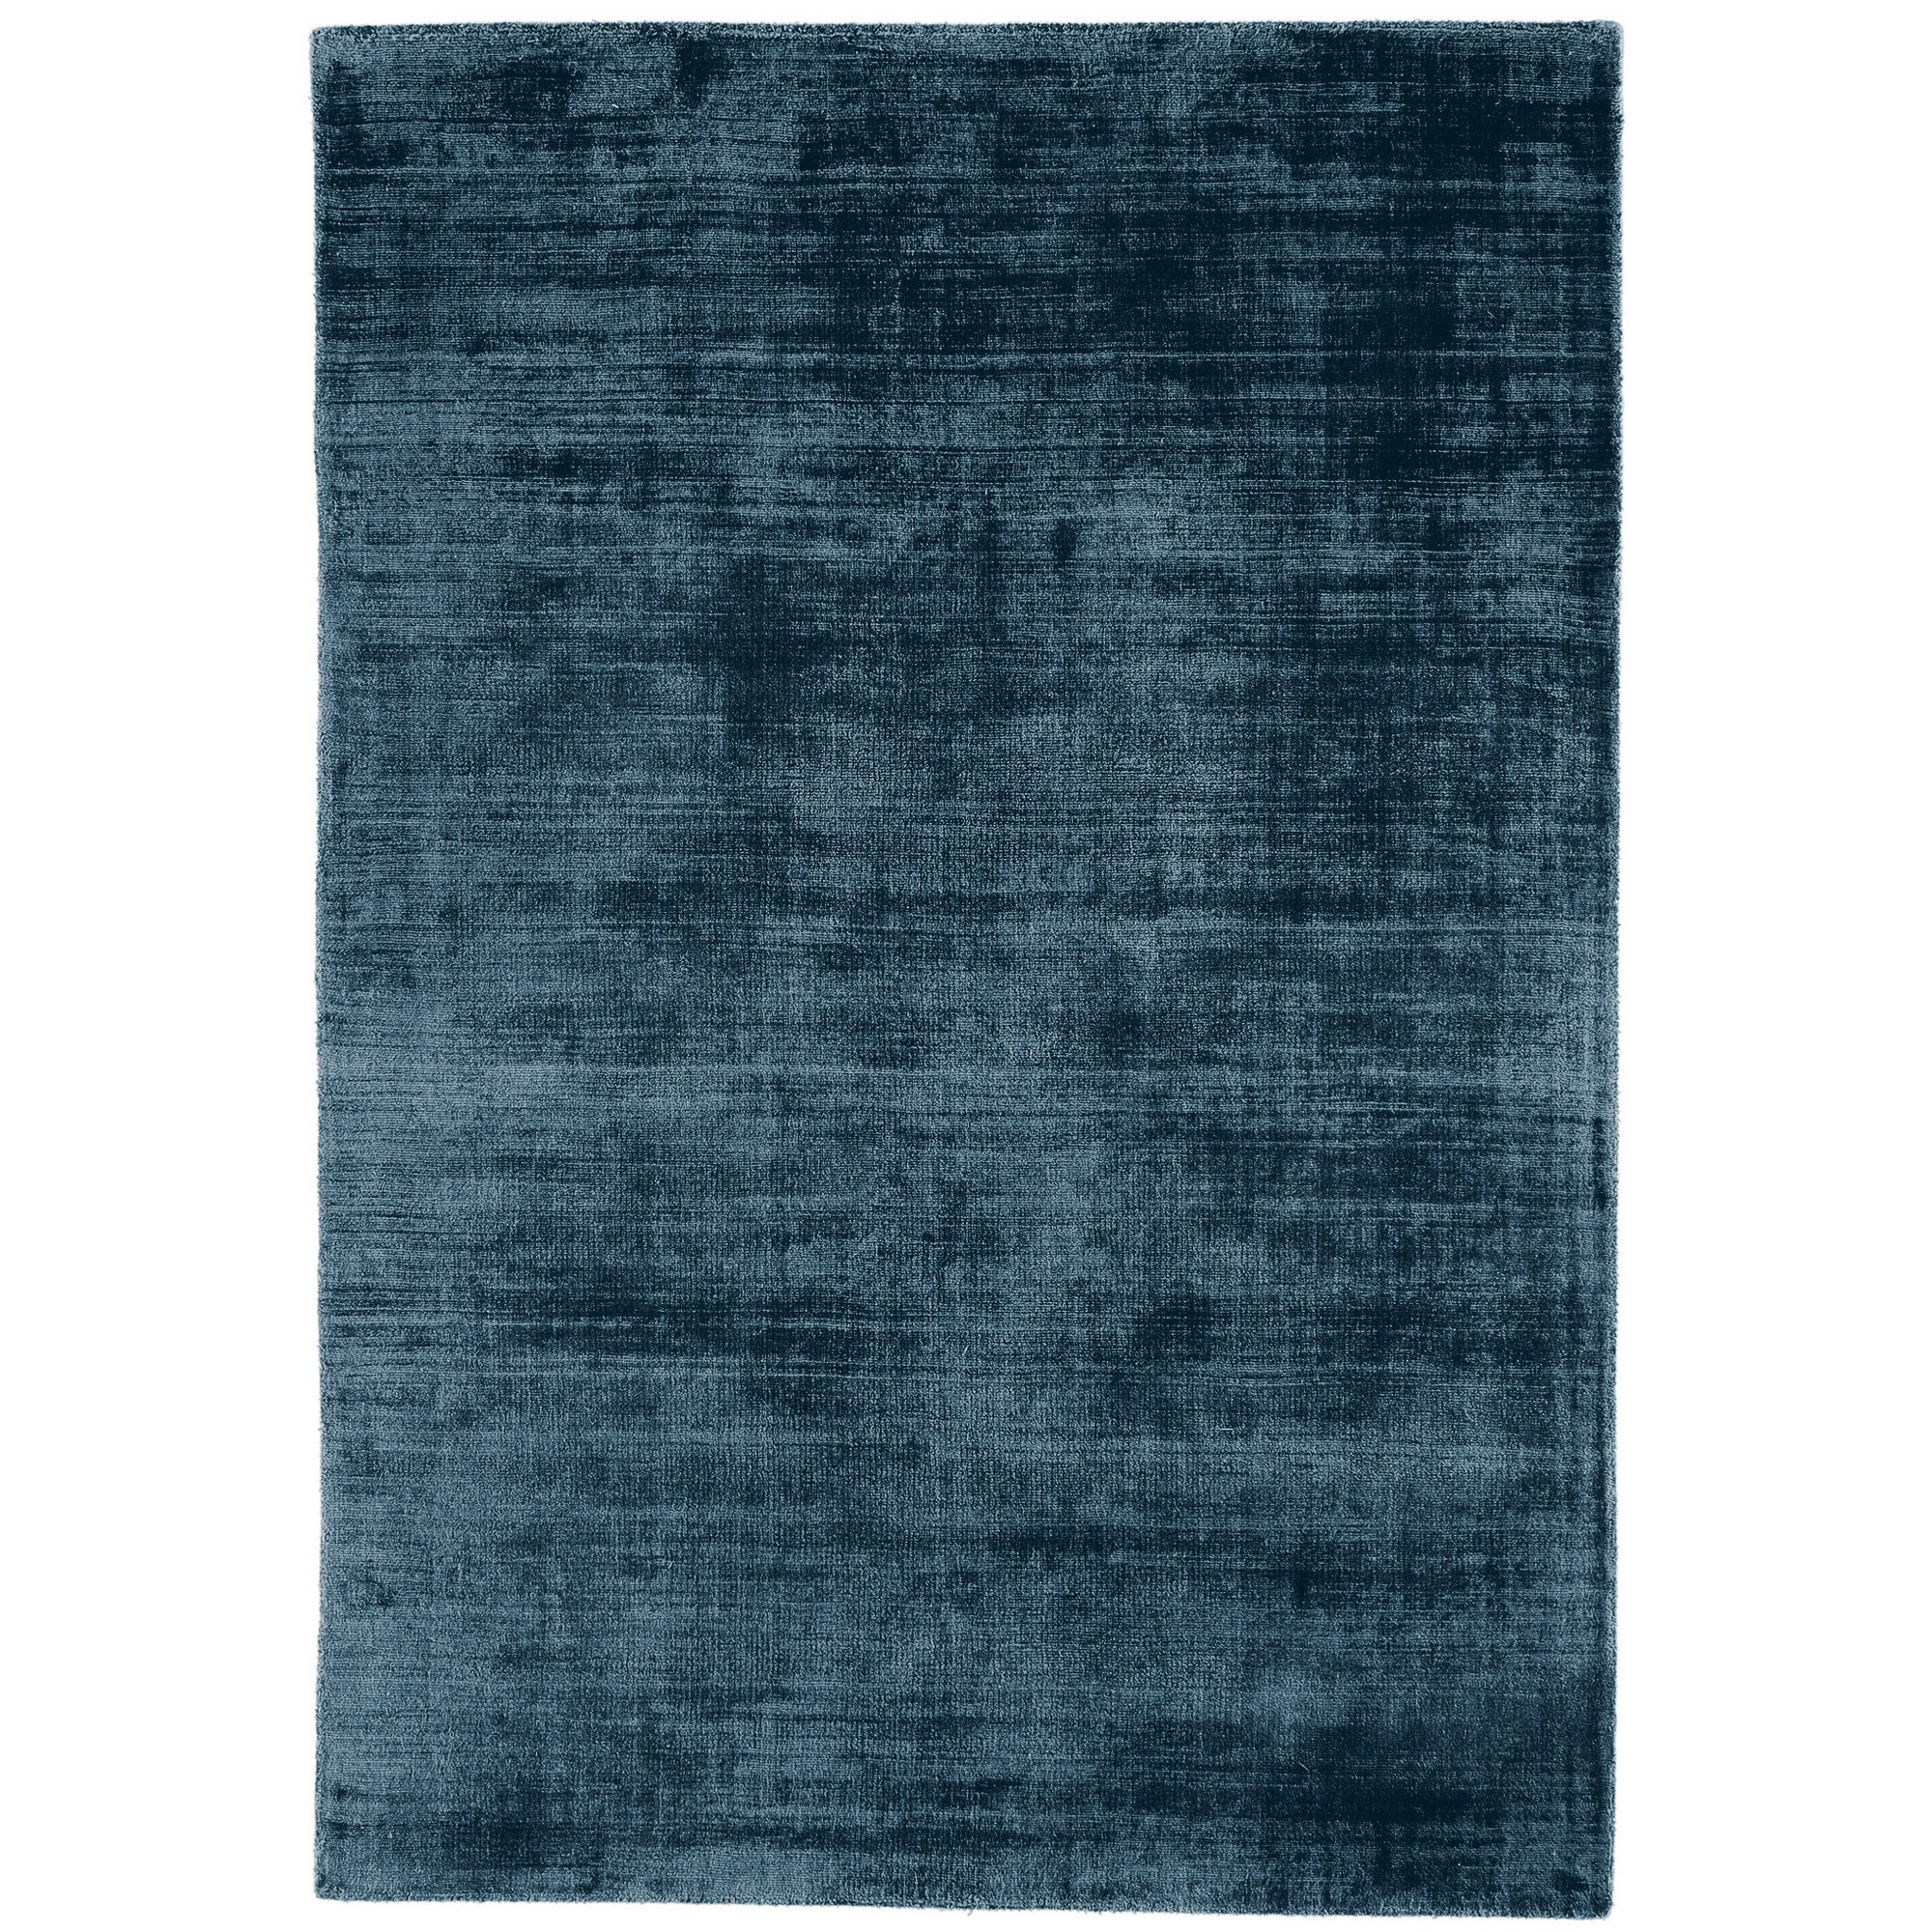 Blade Plain Rugs in Teal